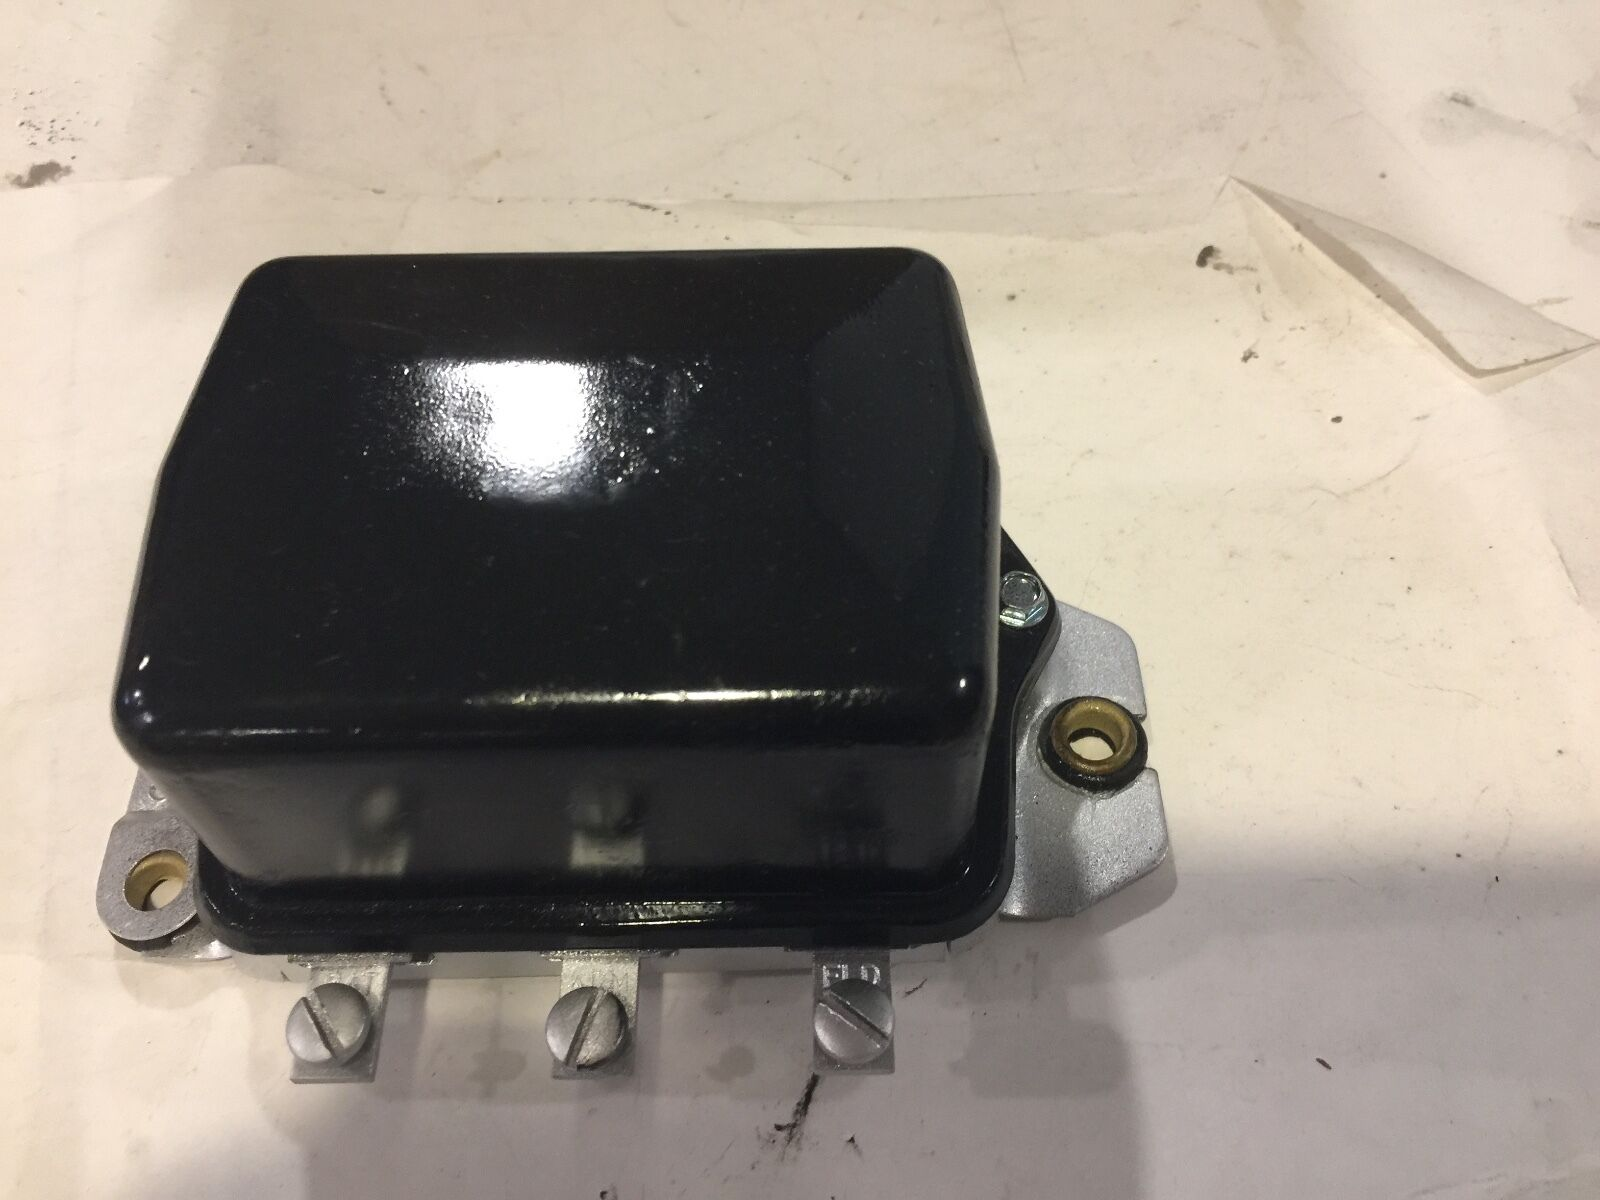 Used Chevrolet Corvette Voltage Regulators For Sale Chevy Regulator Vintage Made In Usa 1955 1963 Buick Cadillac